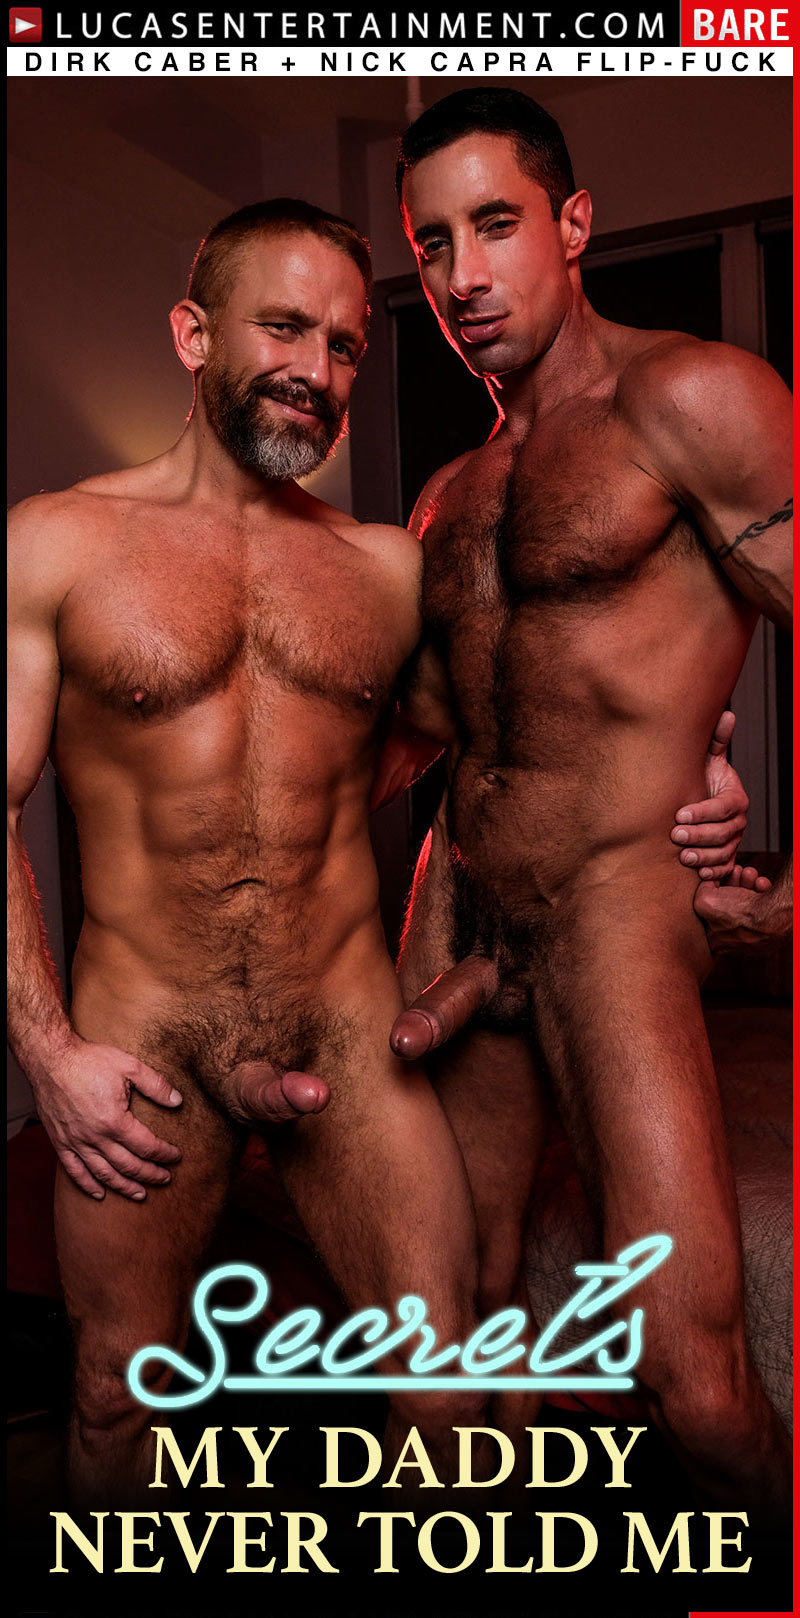 Secrets My Daddy Never Told Me, Scene Two (Dirk Caber and Nick Capra Flip-Fuck) at LucasEntertainment